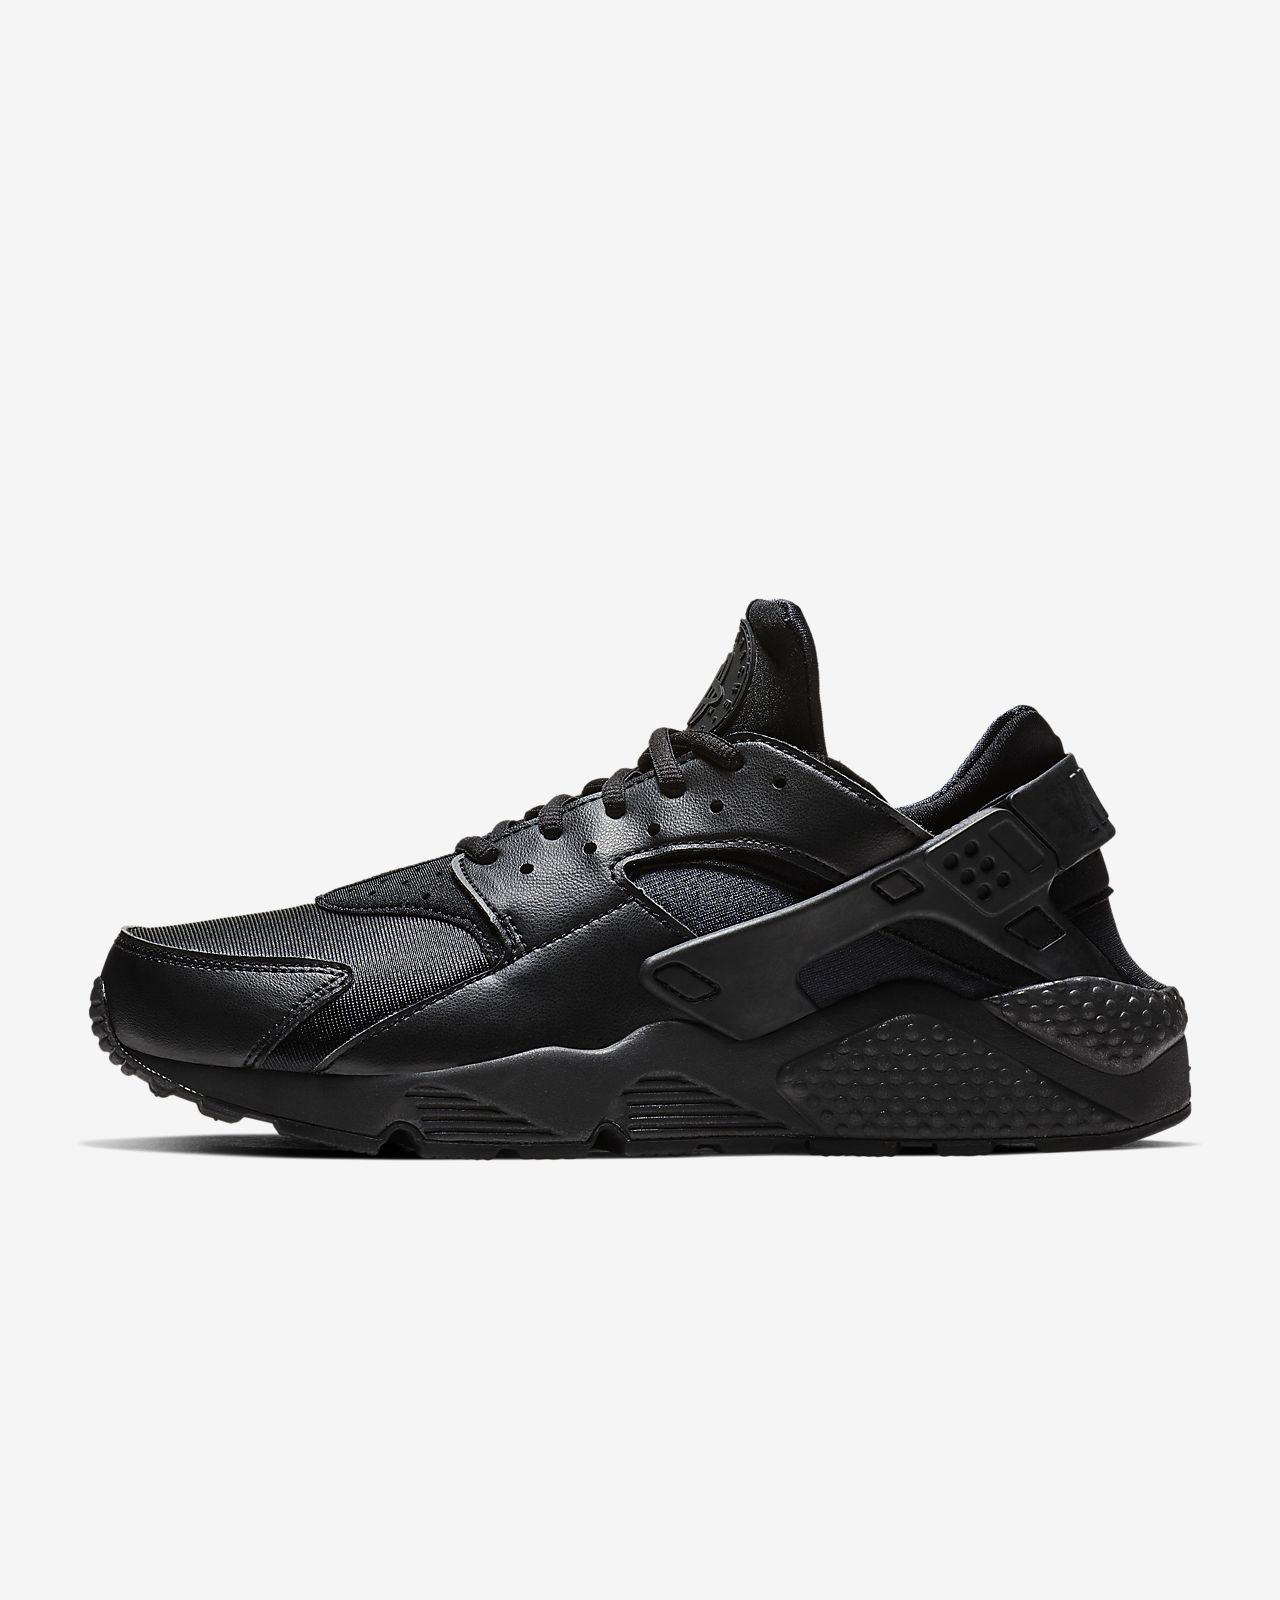 7f889246118 Nike Air Huarache Women s Shoe. Nike.com